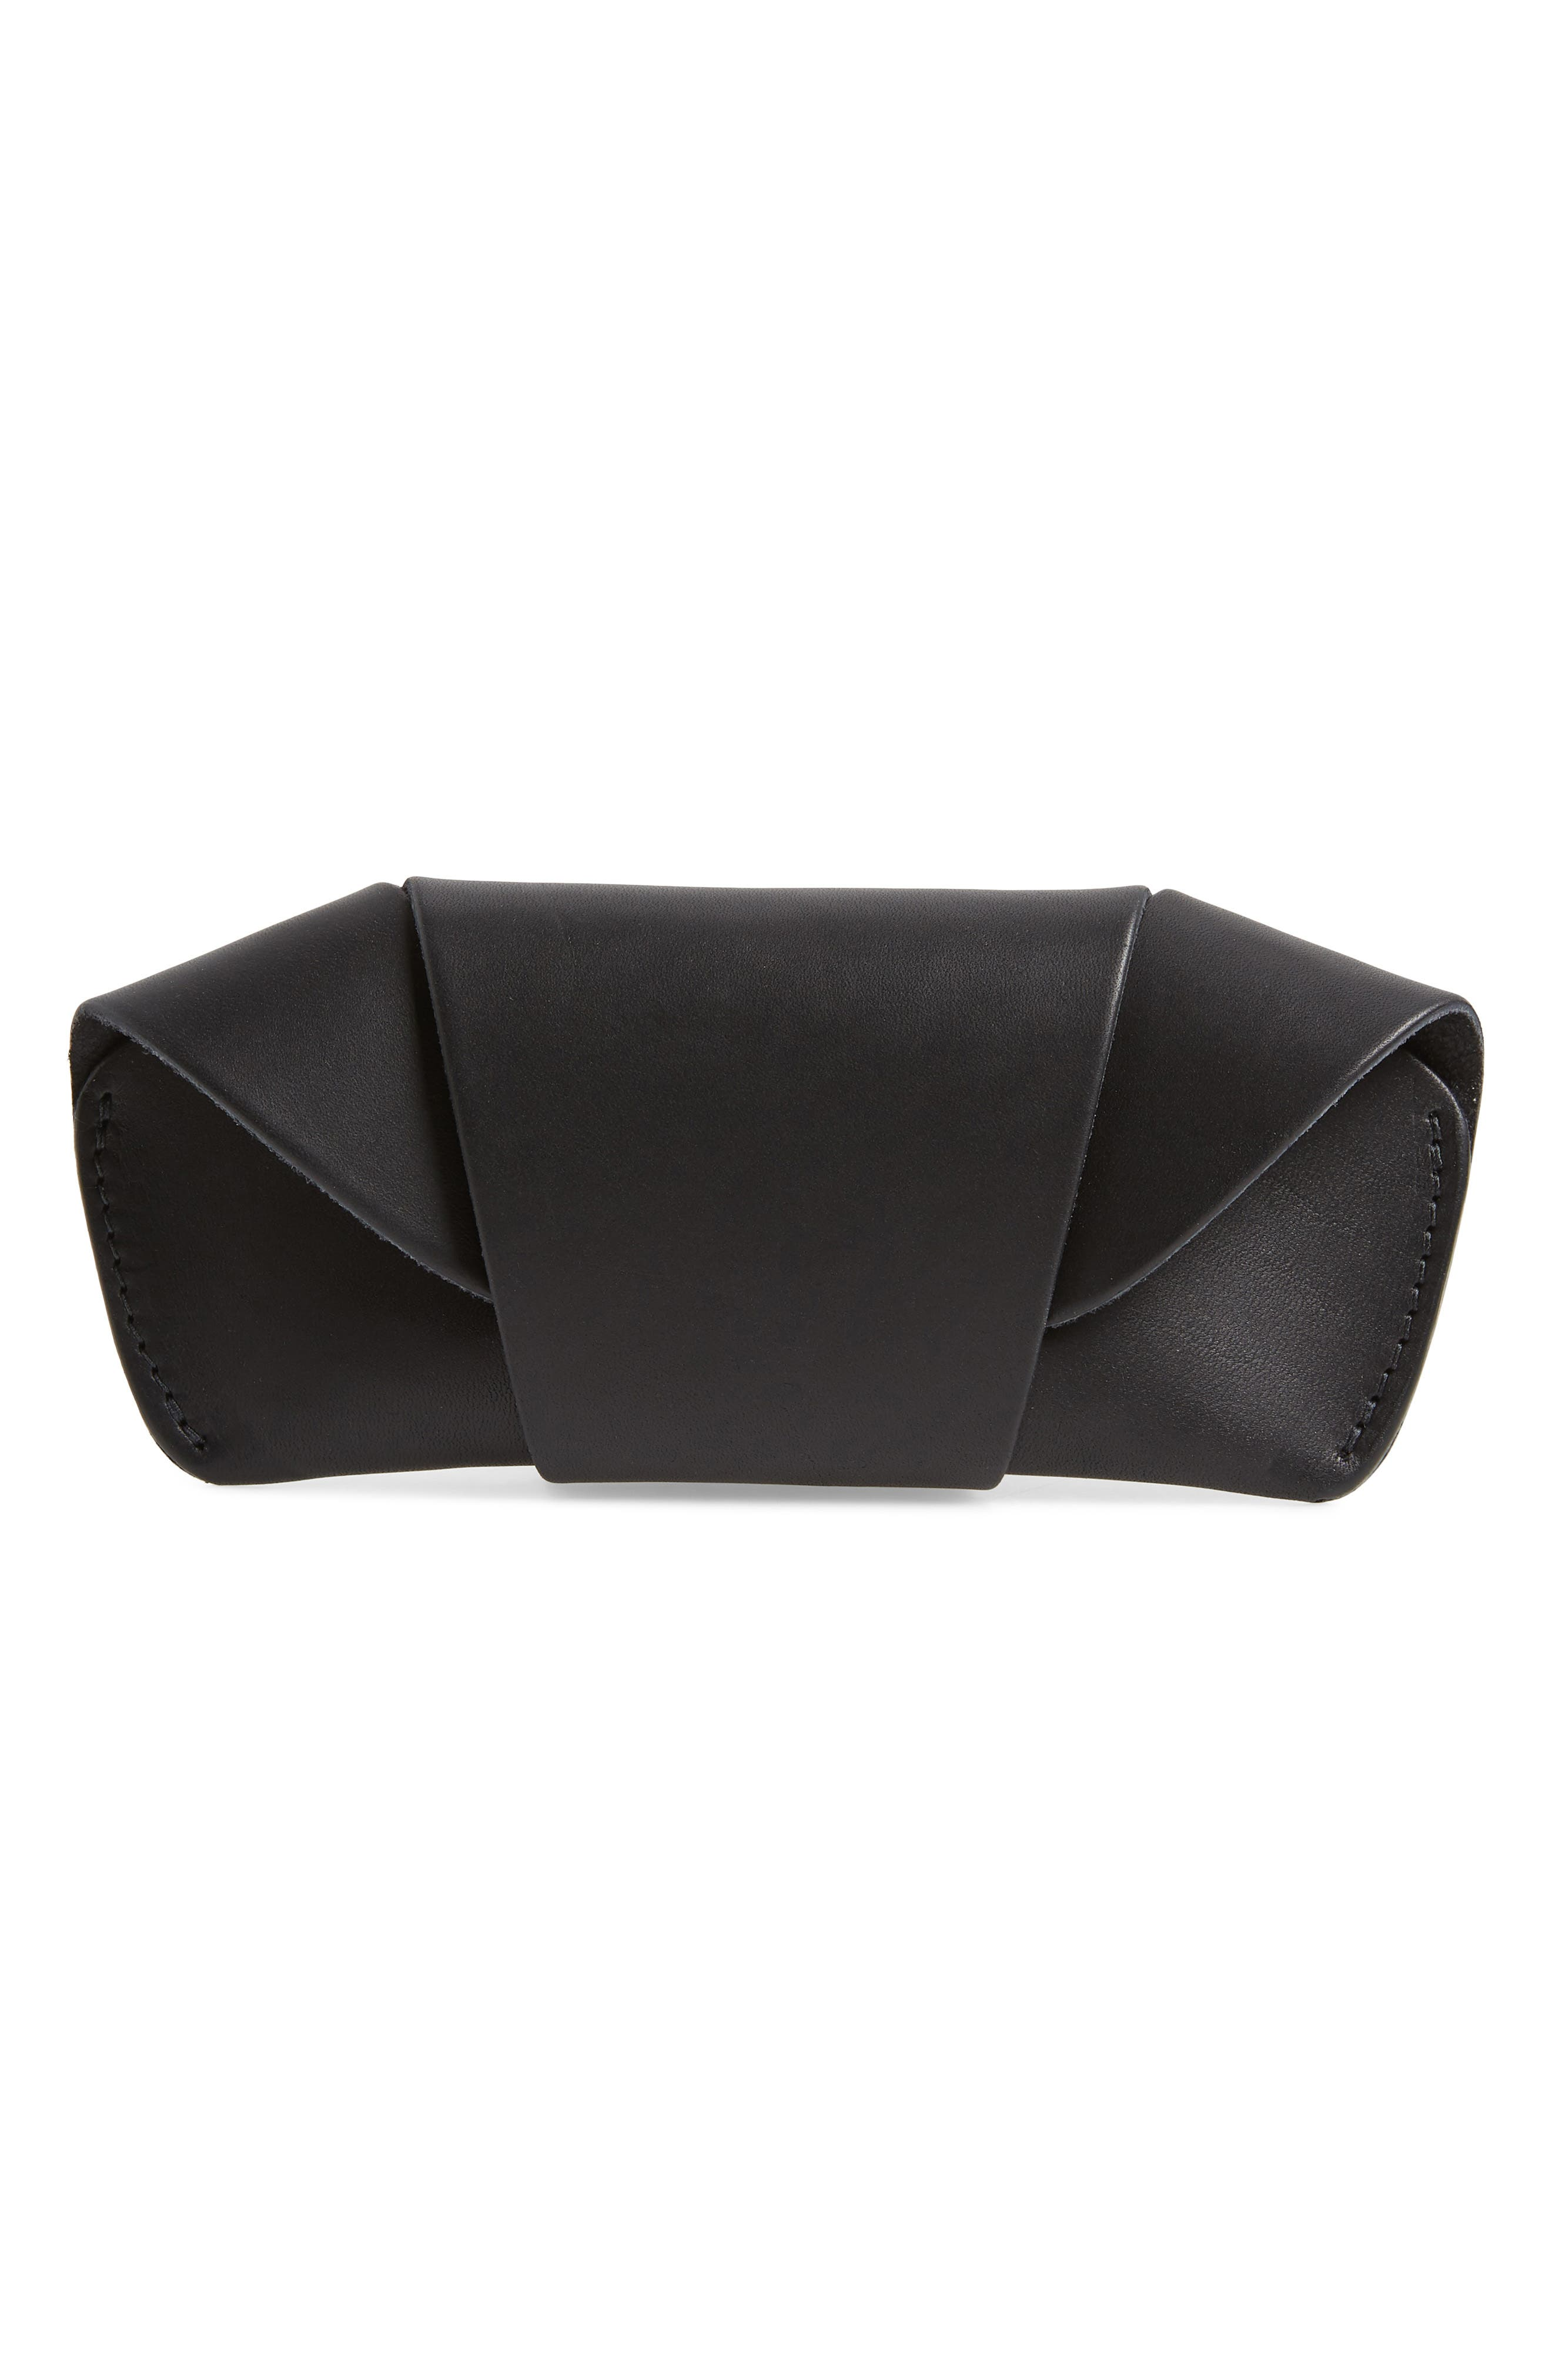 TANNER GOODS LEATHER SUNGLASS CASE - BLACK